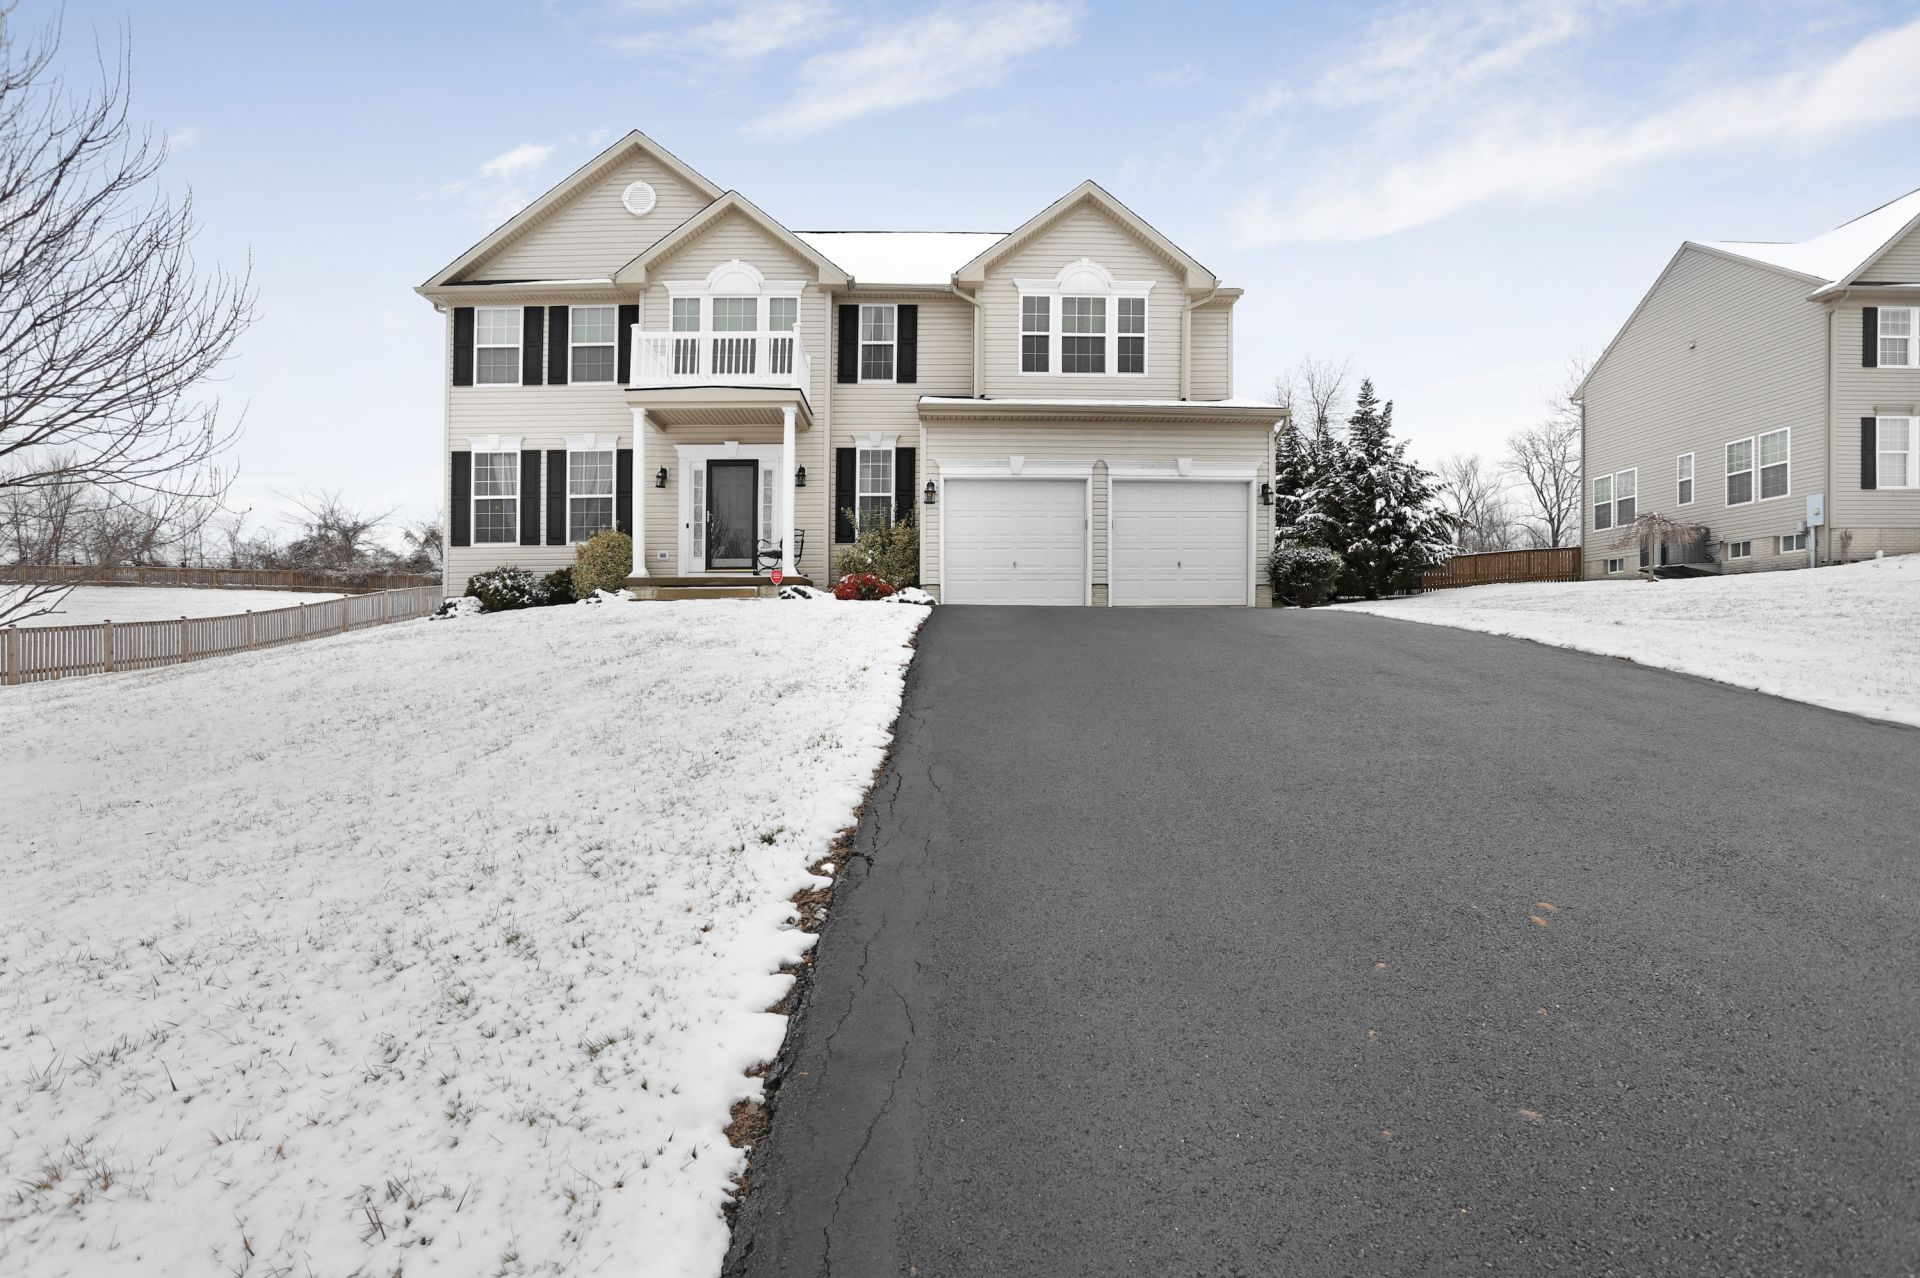 528 Rivanna Run Road, Falling Waters, WV 25419